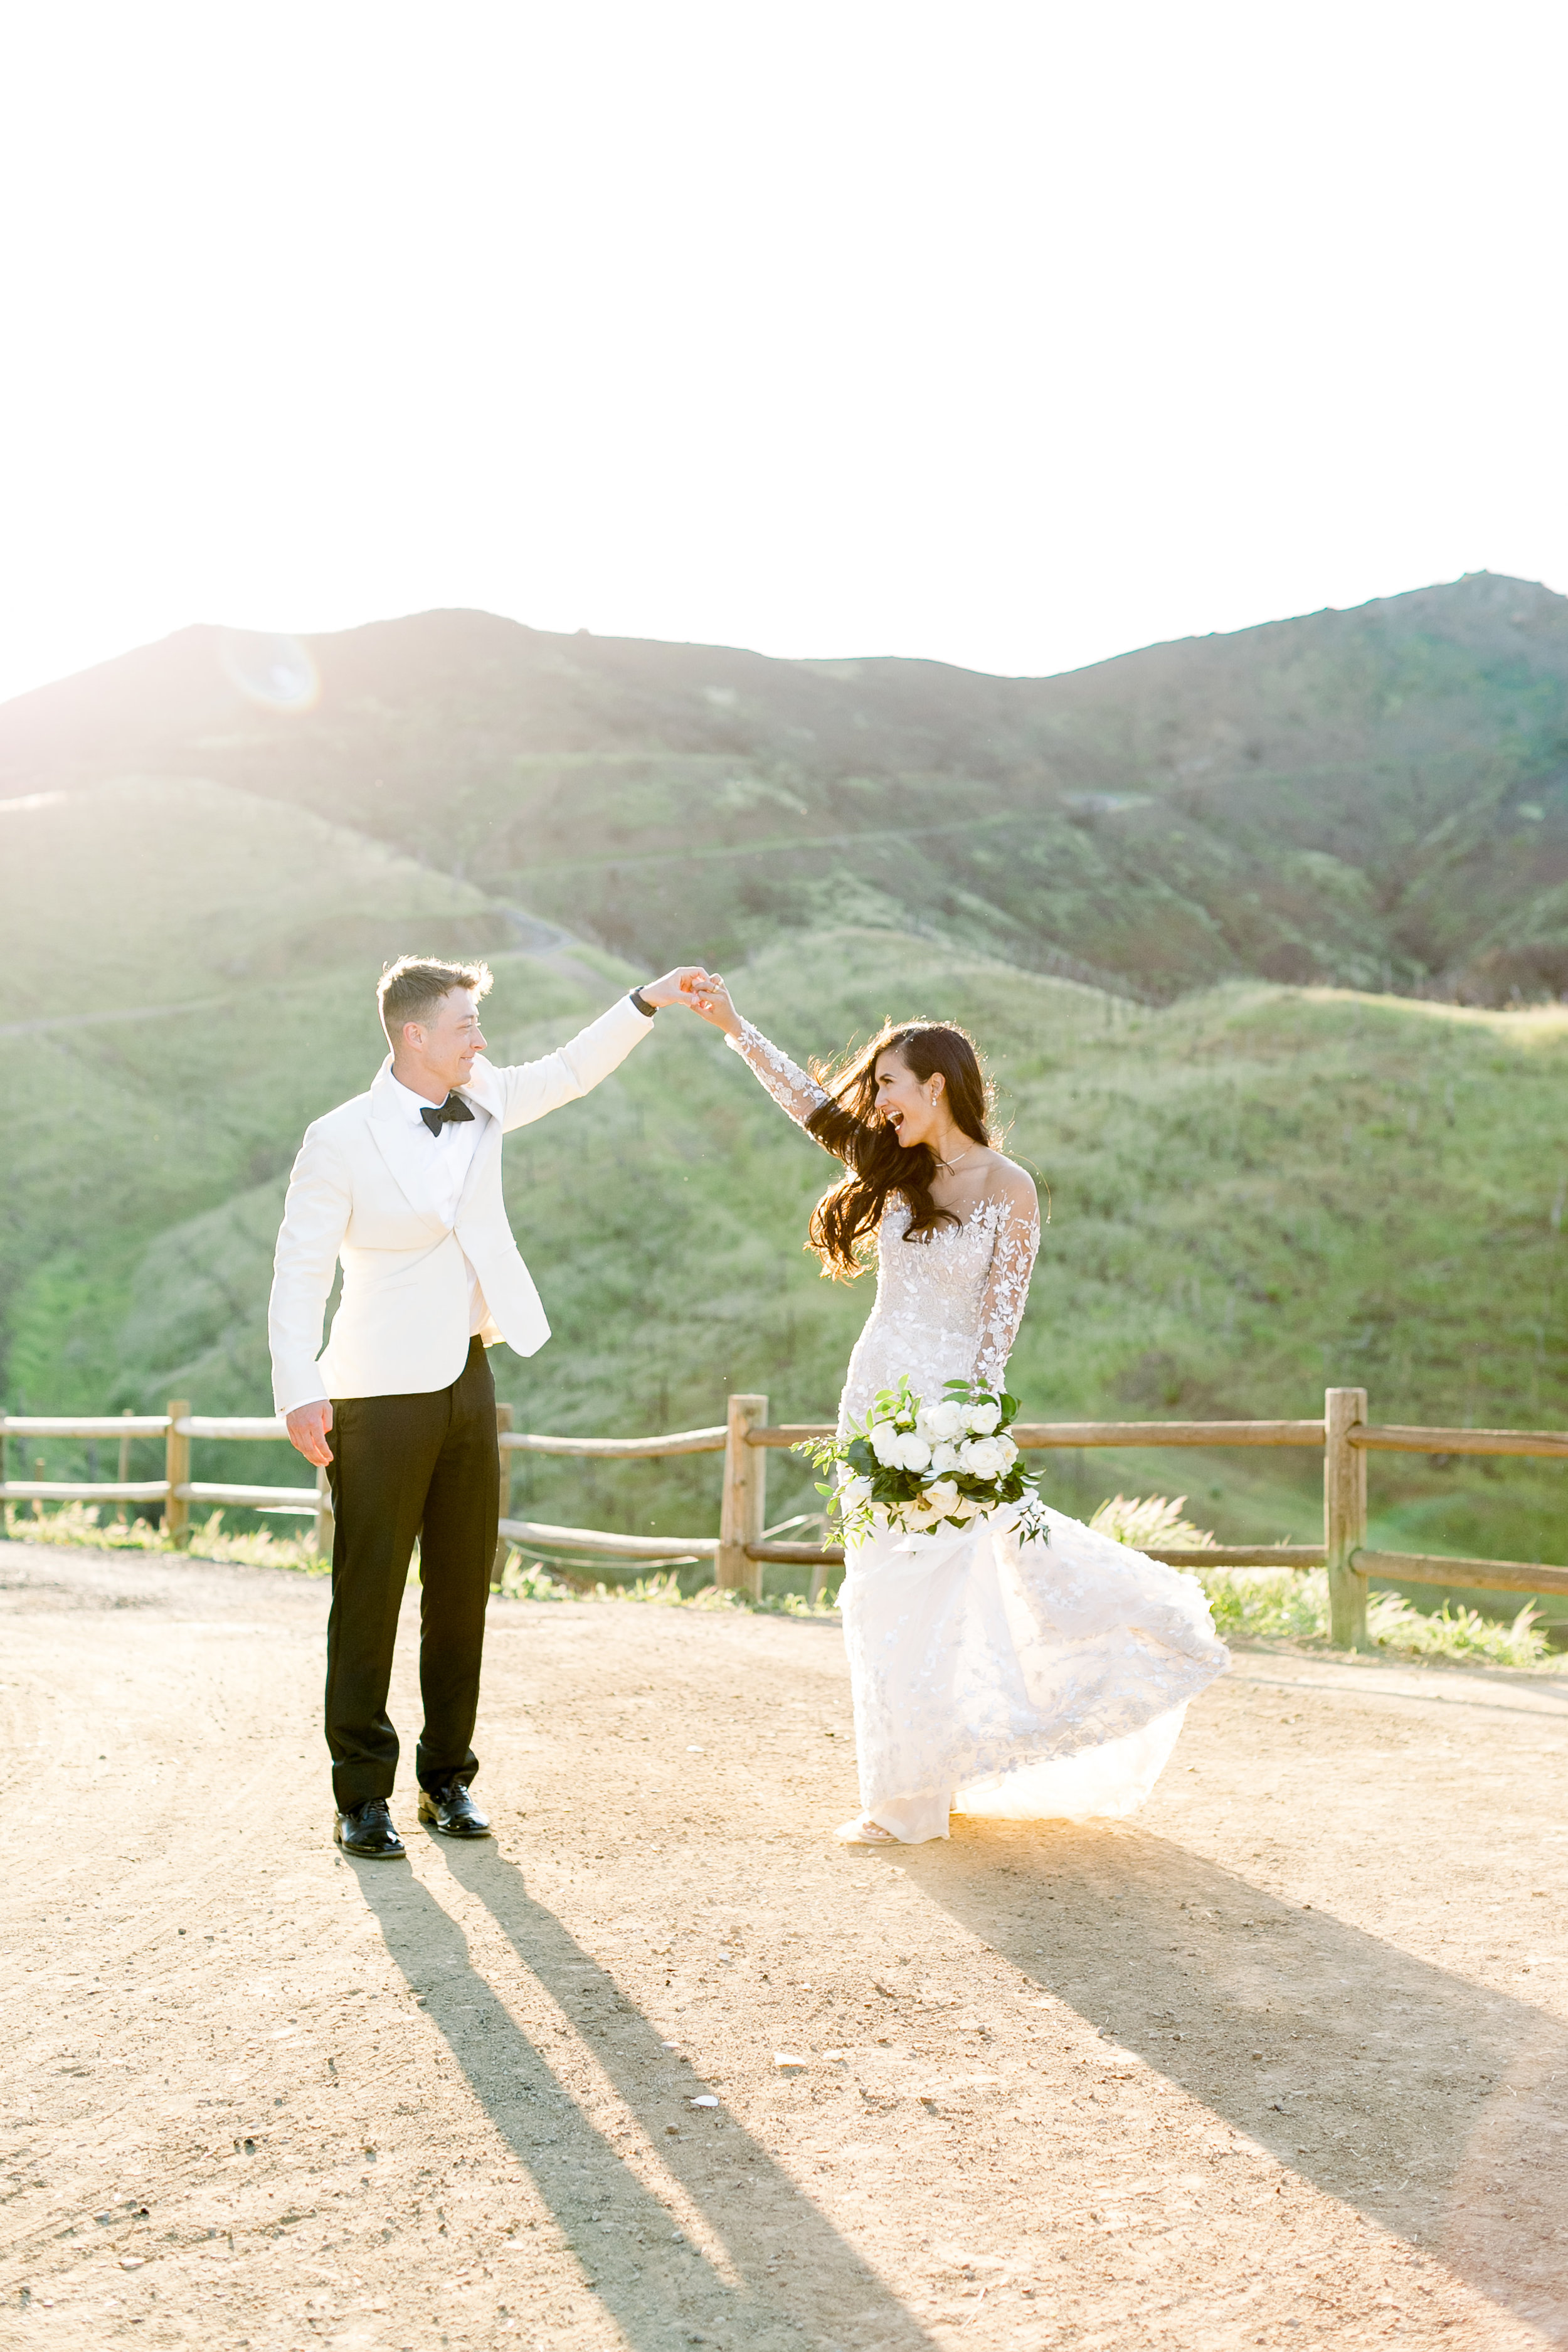 Levi & Amelia's Wedding - Natalie Schutt Photography - Bride + Groom-22.jpg